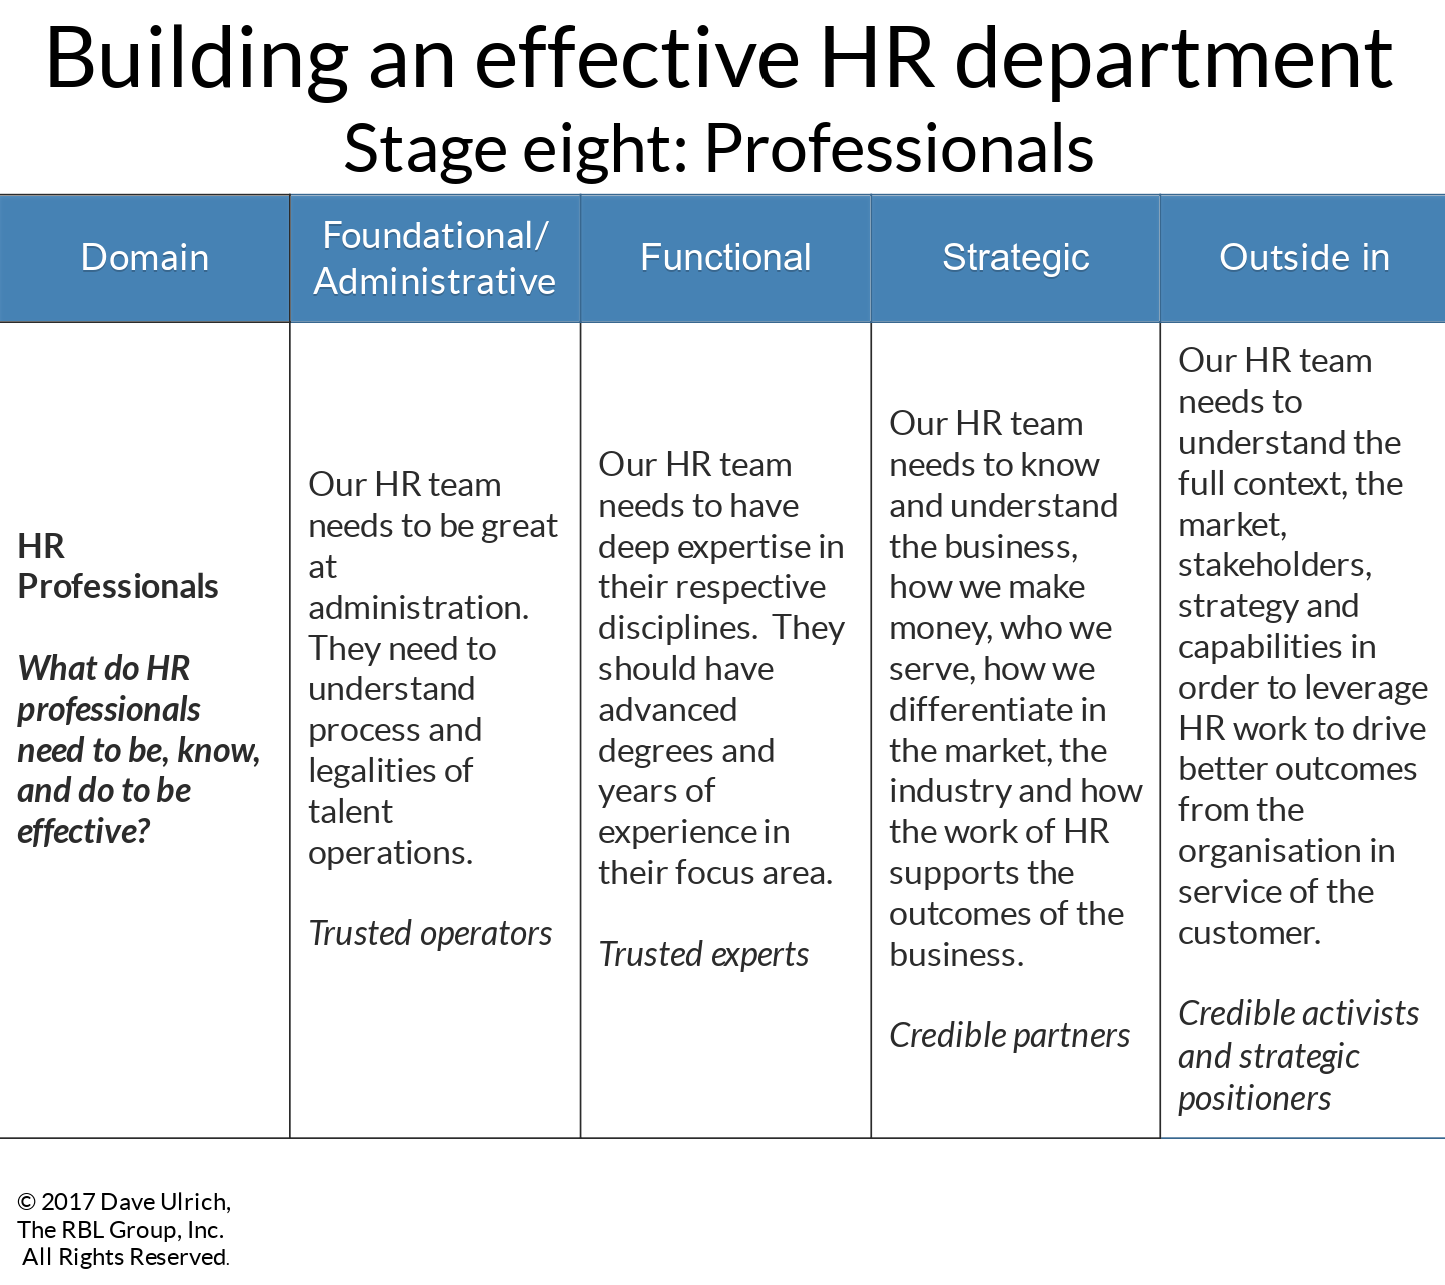 Building an effective HR department stage eight